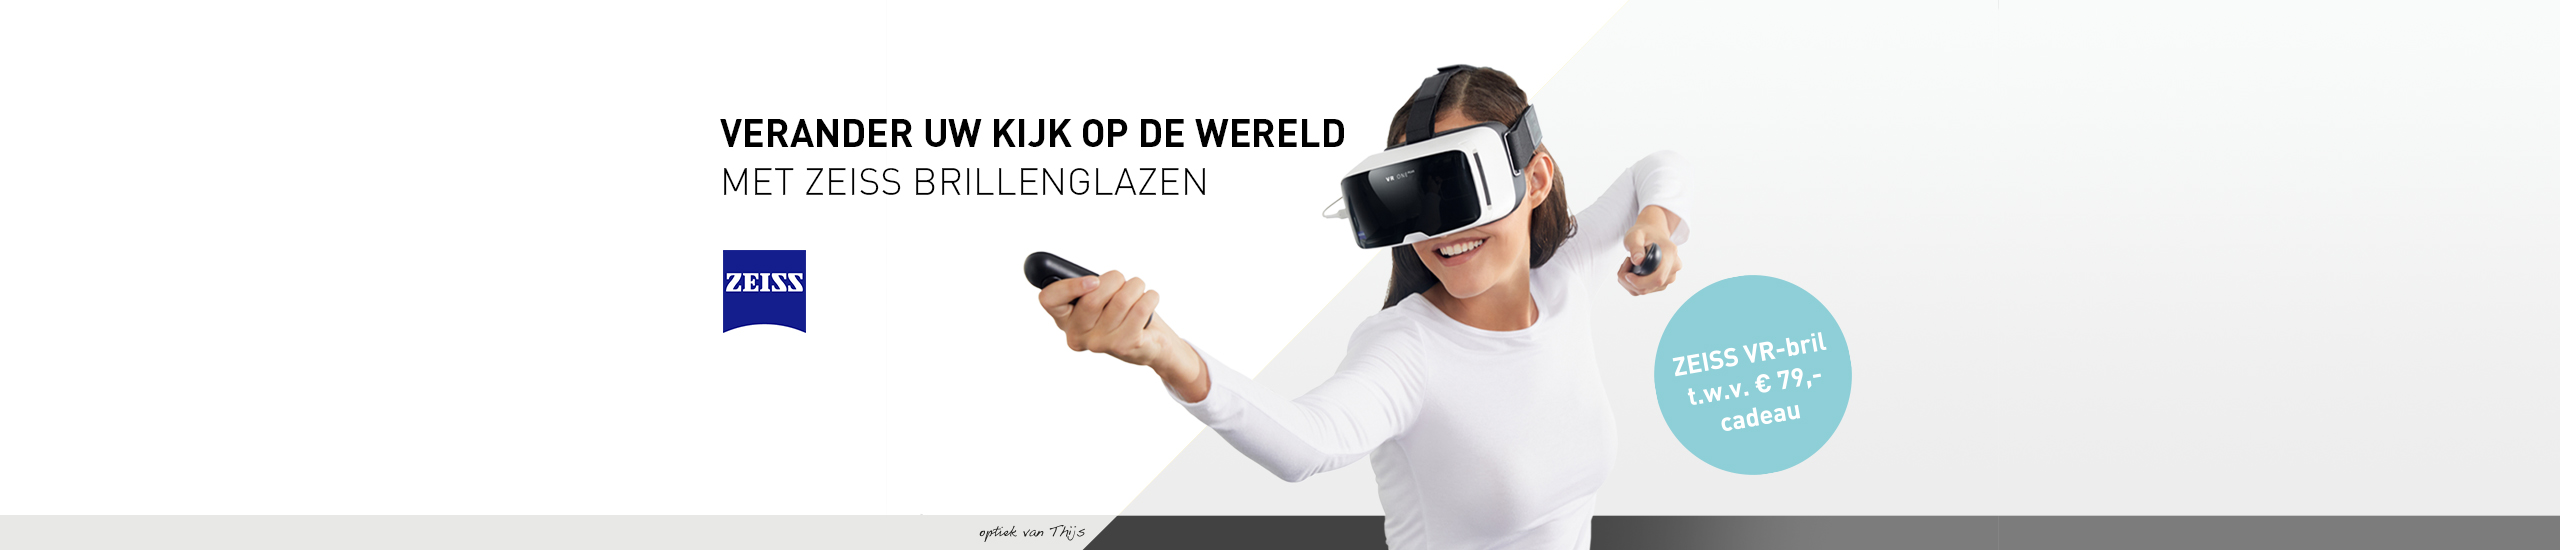 Intervisie Optiek - Zeis brillenglazen